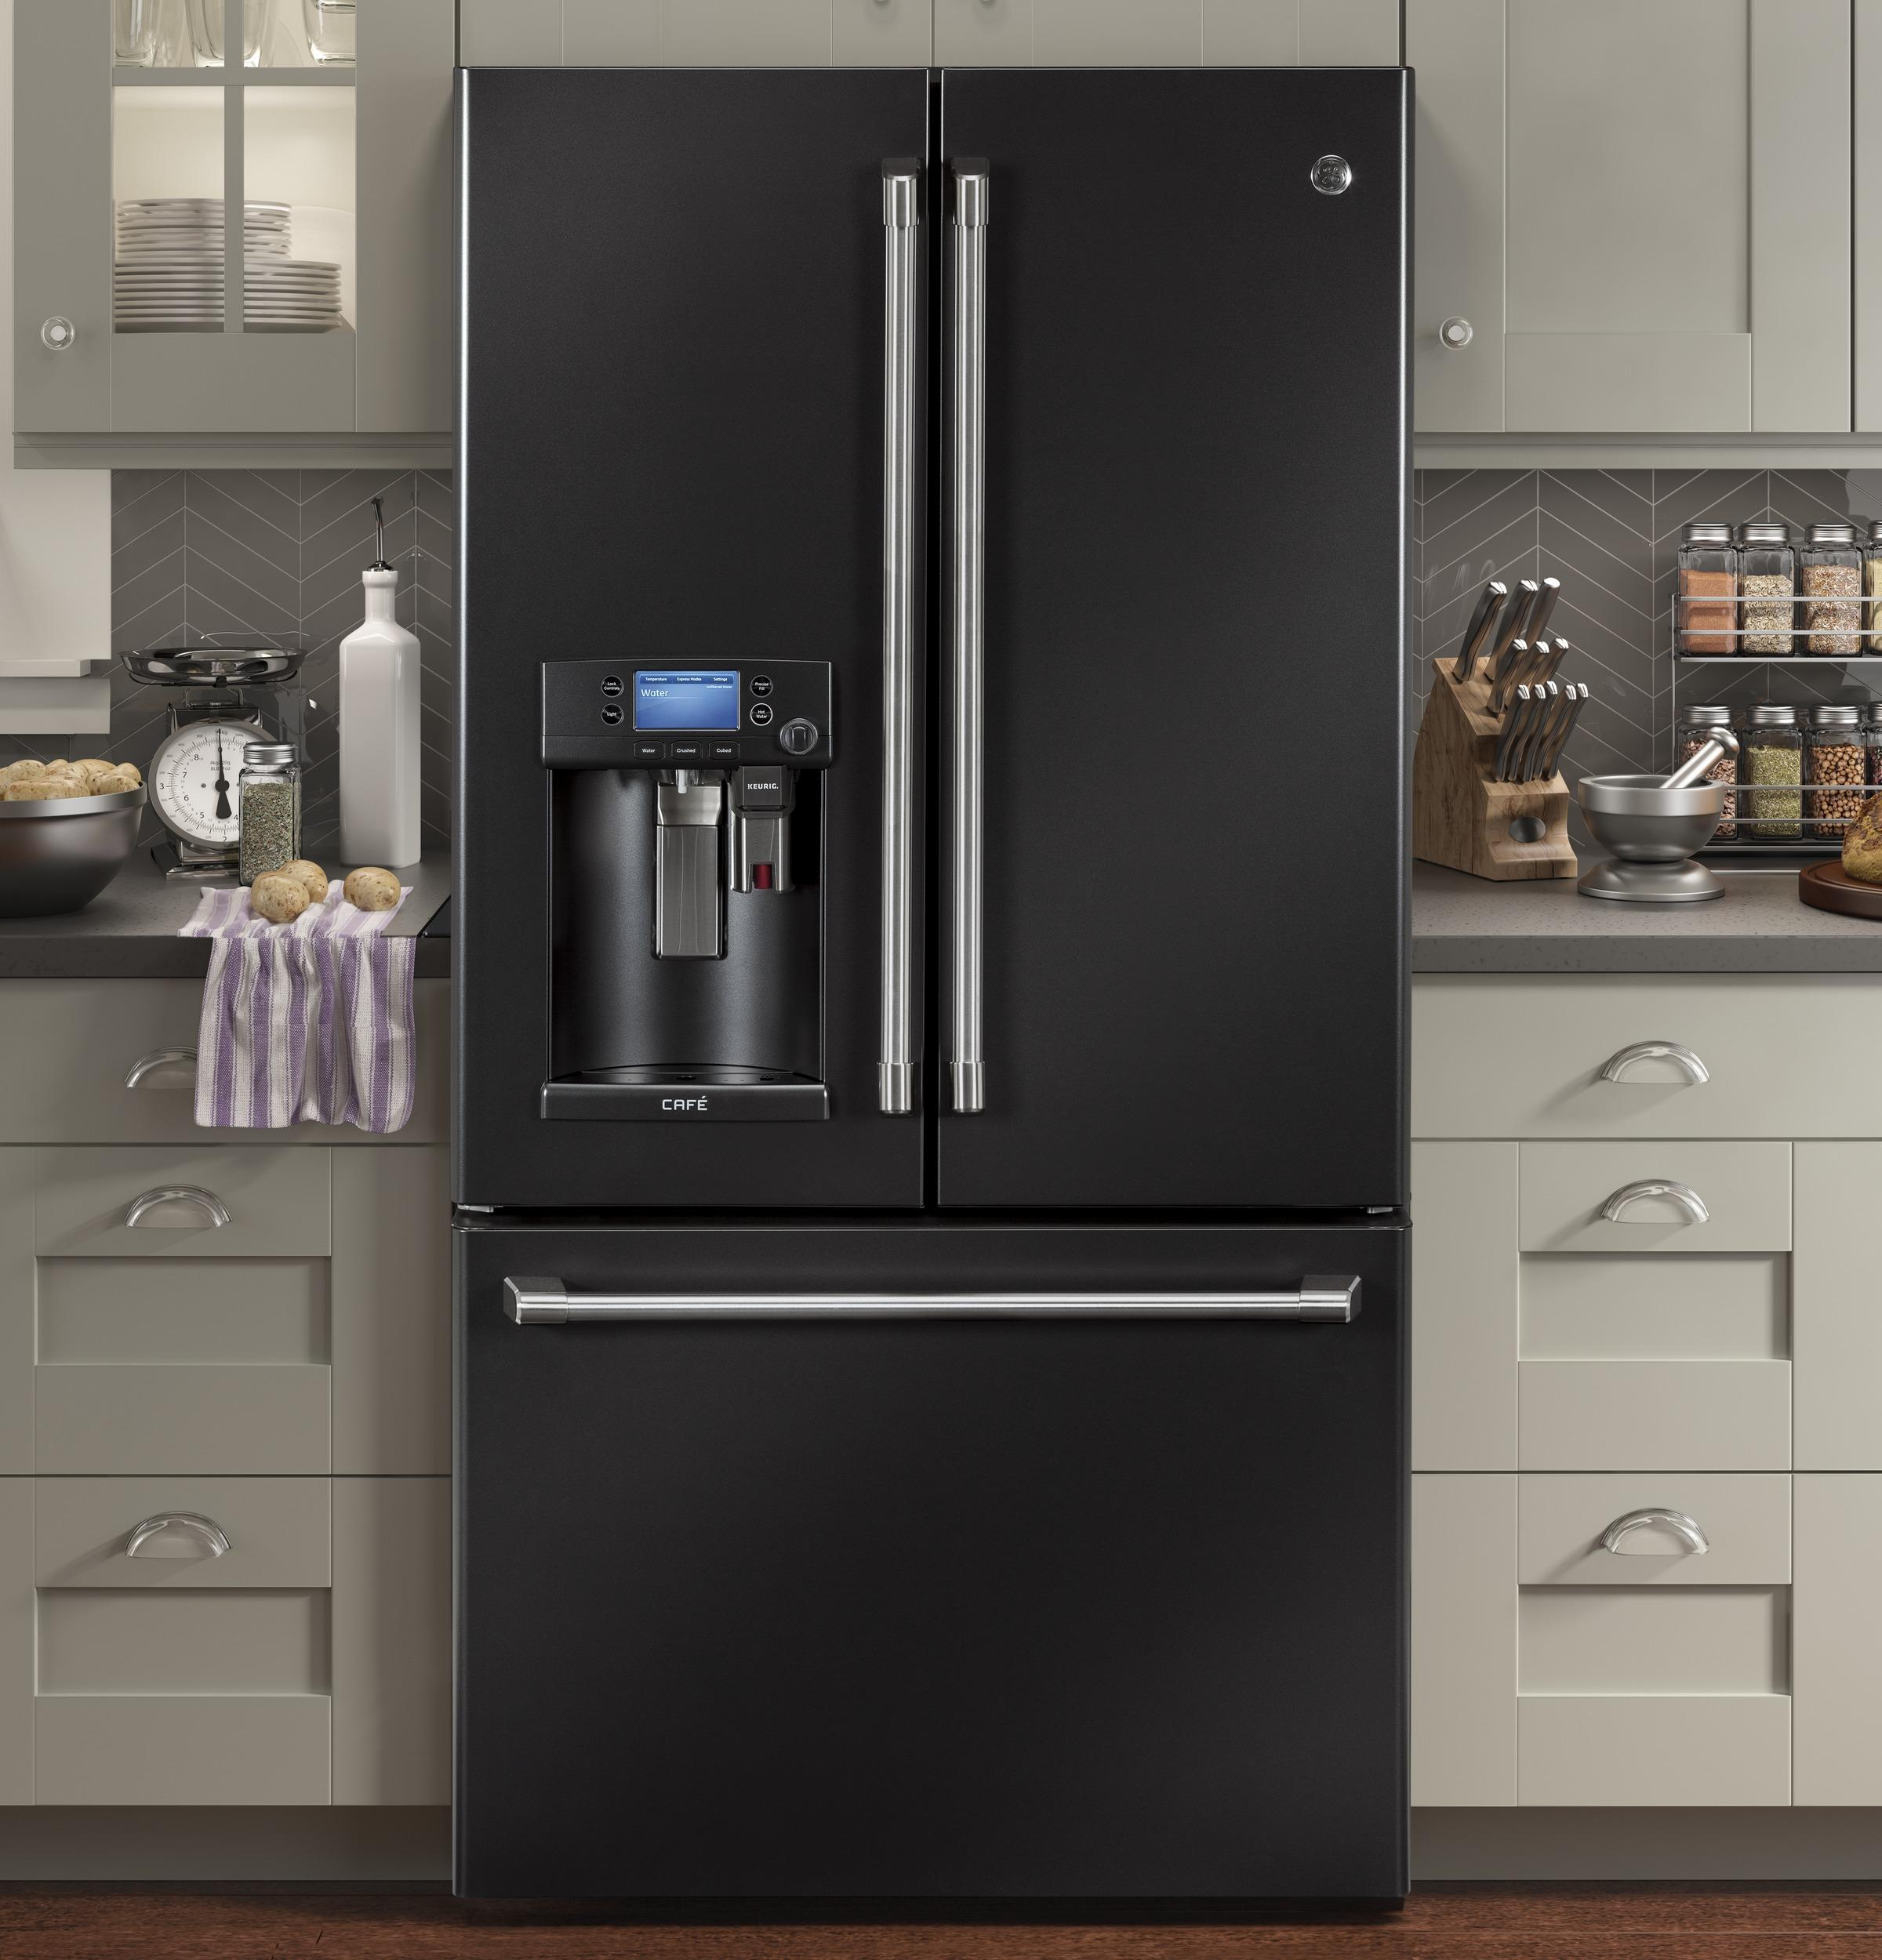 GE Cafe™ Series ENERGY STAR® 22.2 Cu. Ft. Counter Depth French